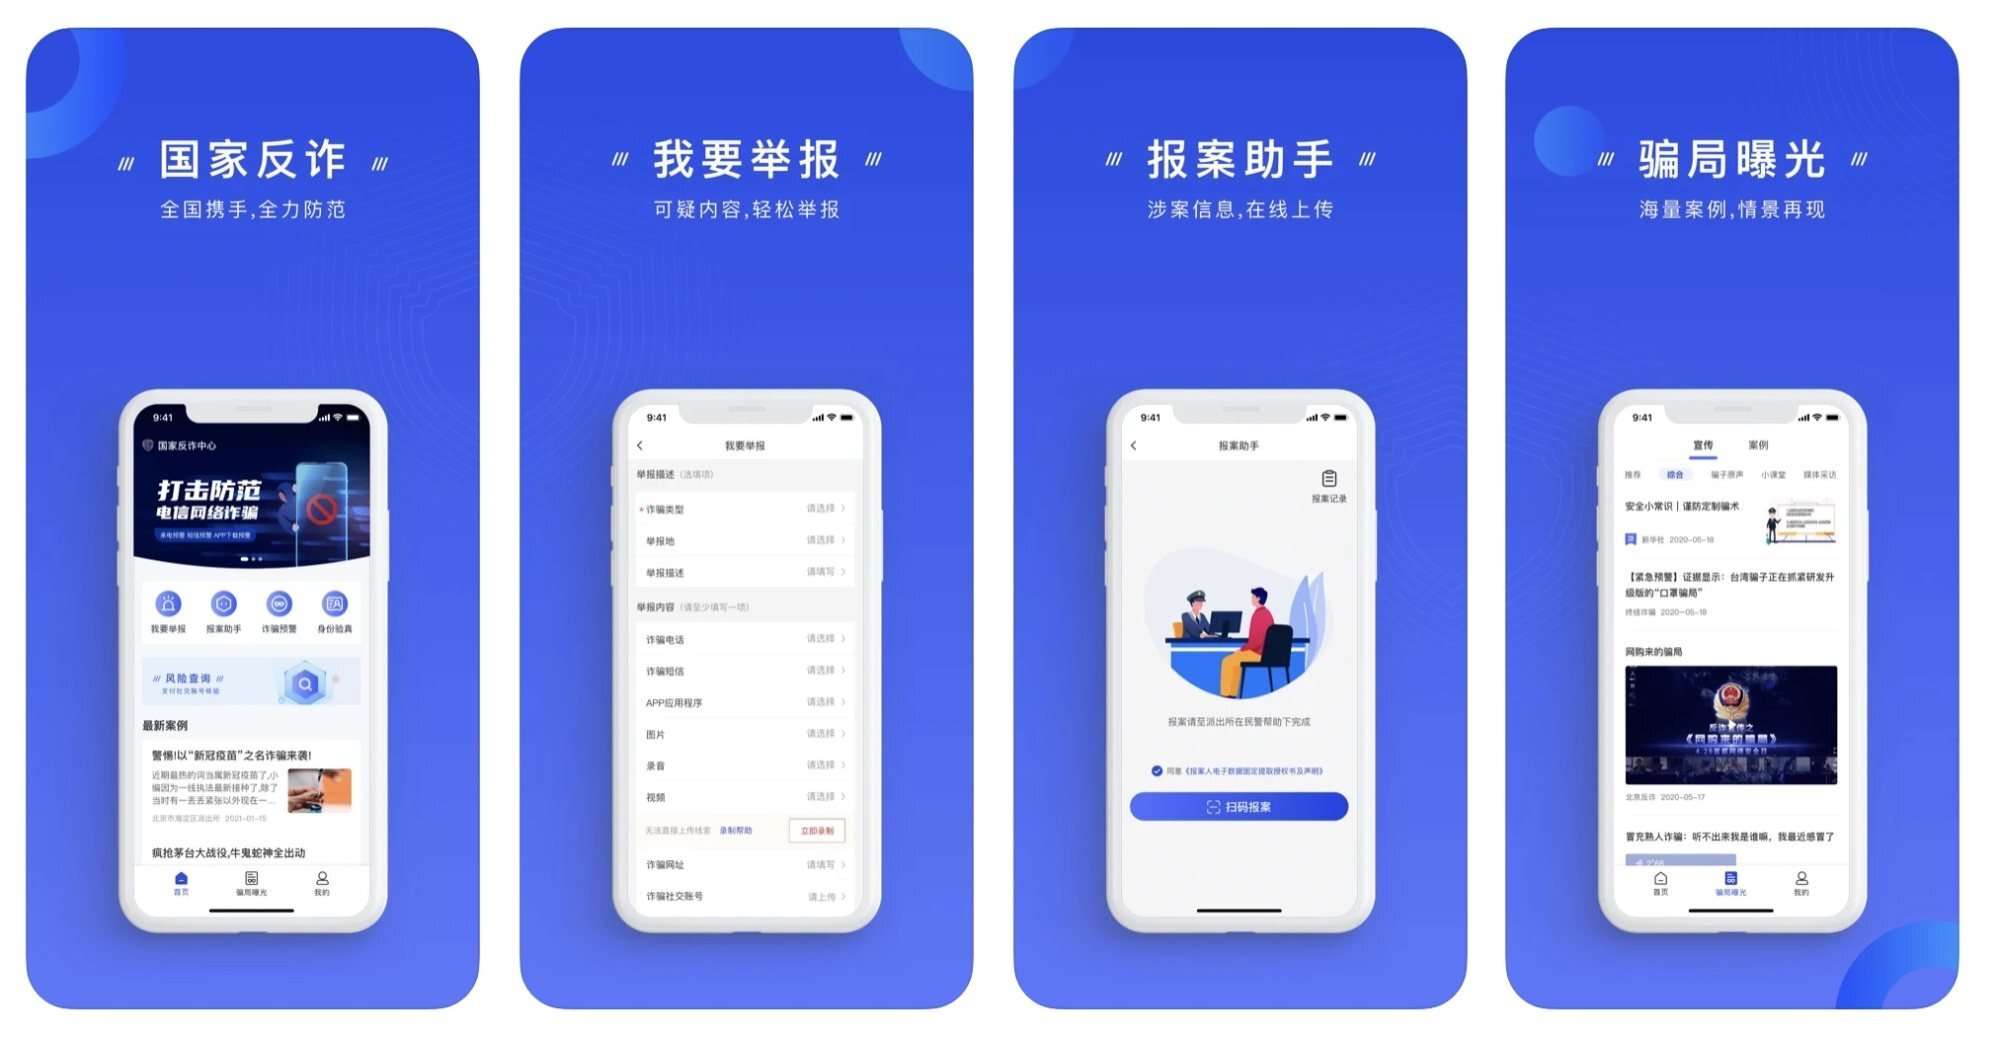 """National Anti-fraud Centre"" is an app developed by China's Public Security Bureau and the National Computer Network Emergency Response Technical Team (CNCERT) to tackle fraudulent calls, text messages and installed apps. Photo: Apple App Store"